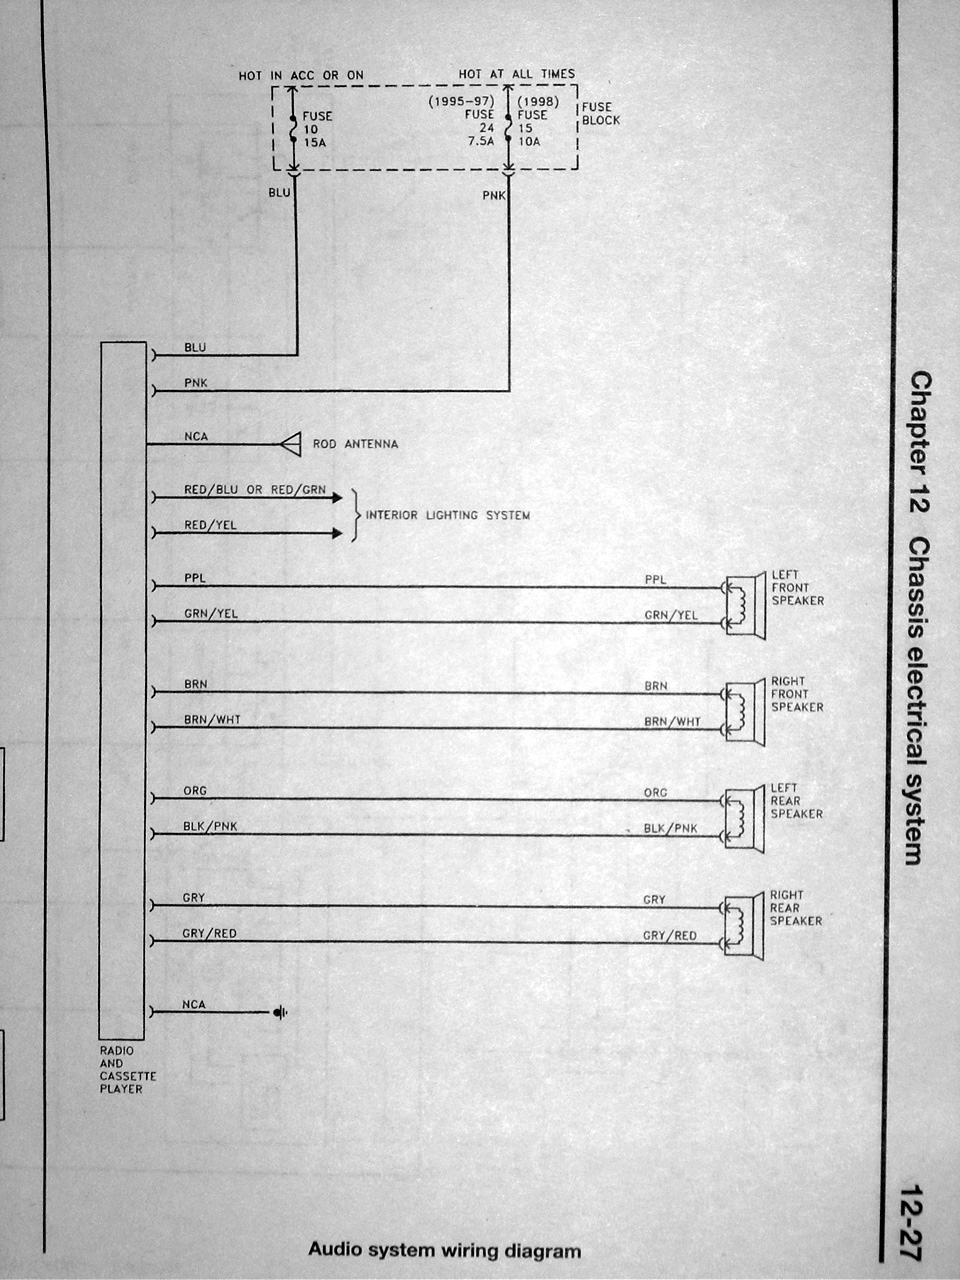 2006 Nissan Frontier Headlight Wiring Diagram Basic Schematic Toyota Tacoma Thread Useful Info Forum 2008 Diagrams